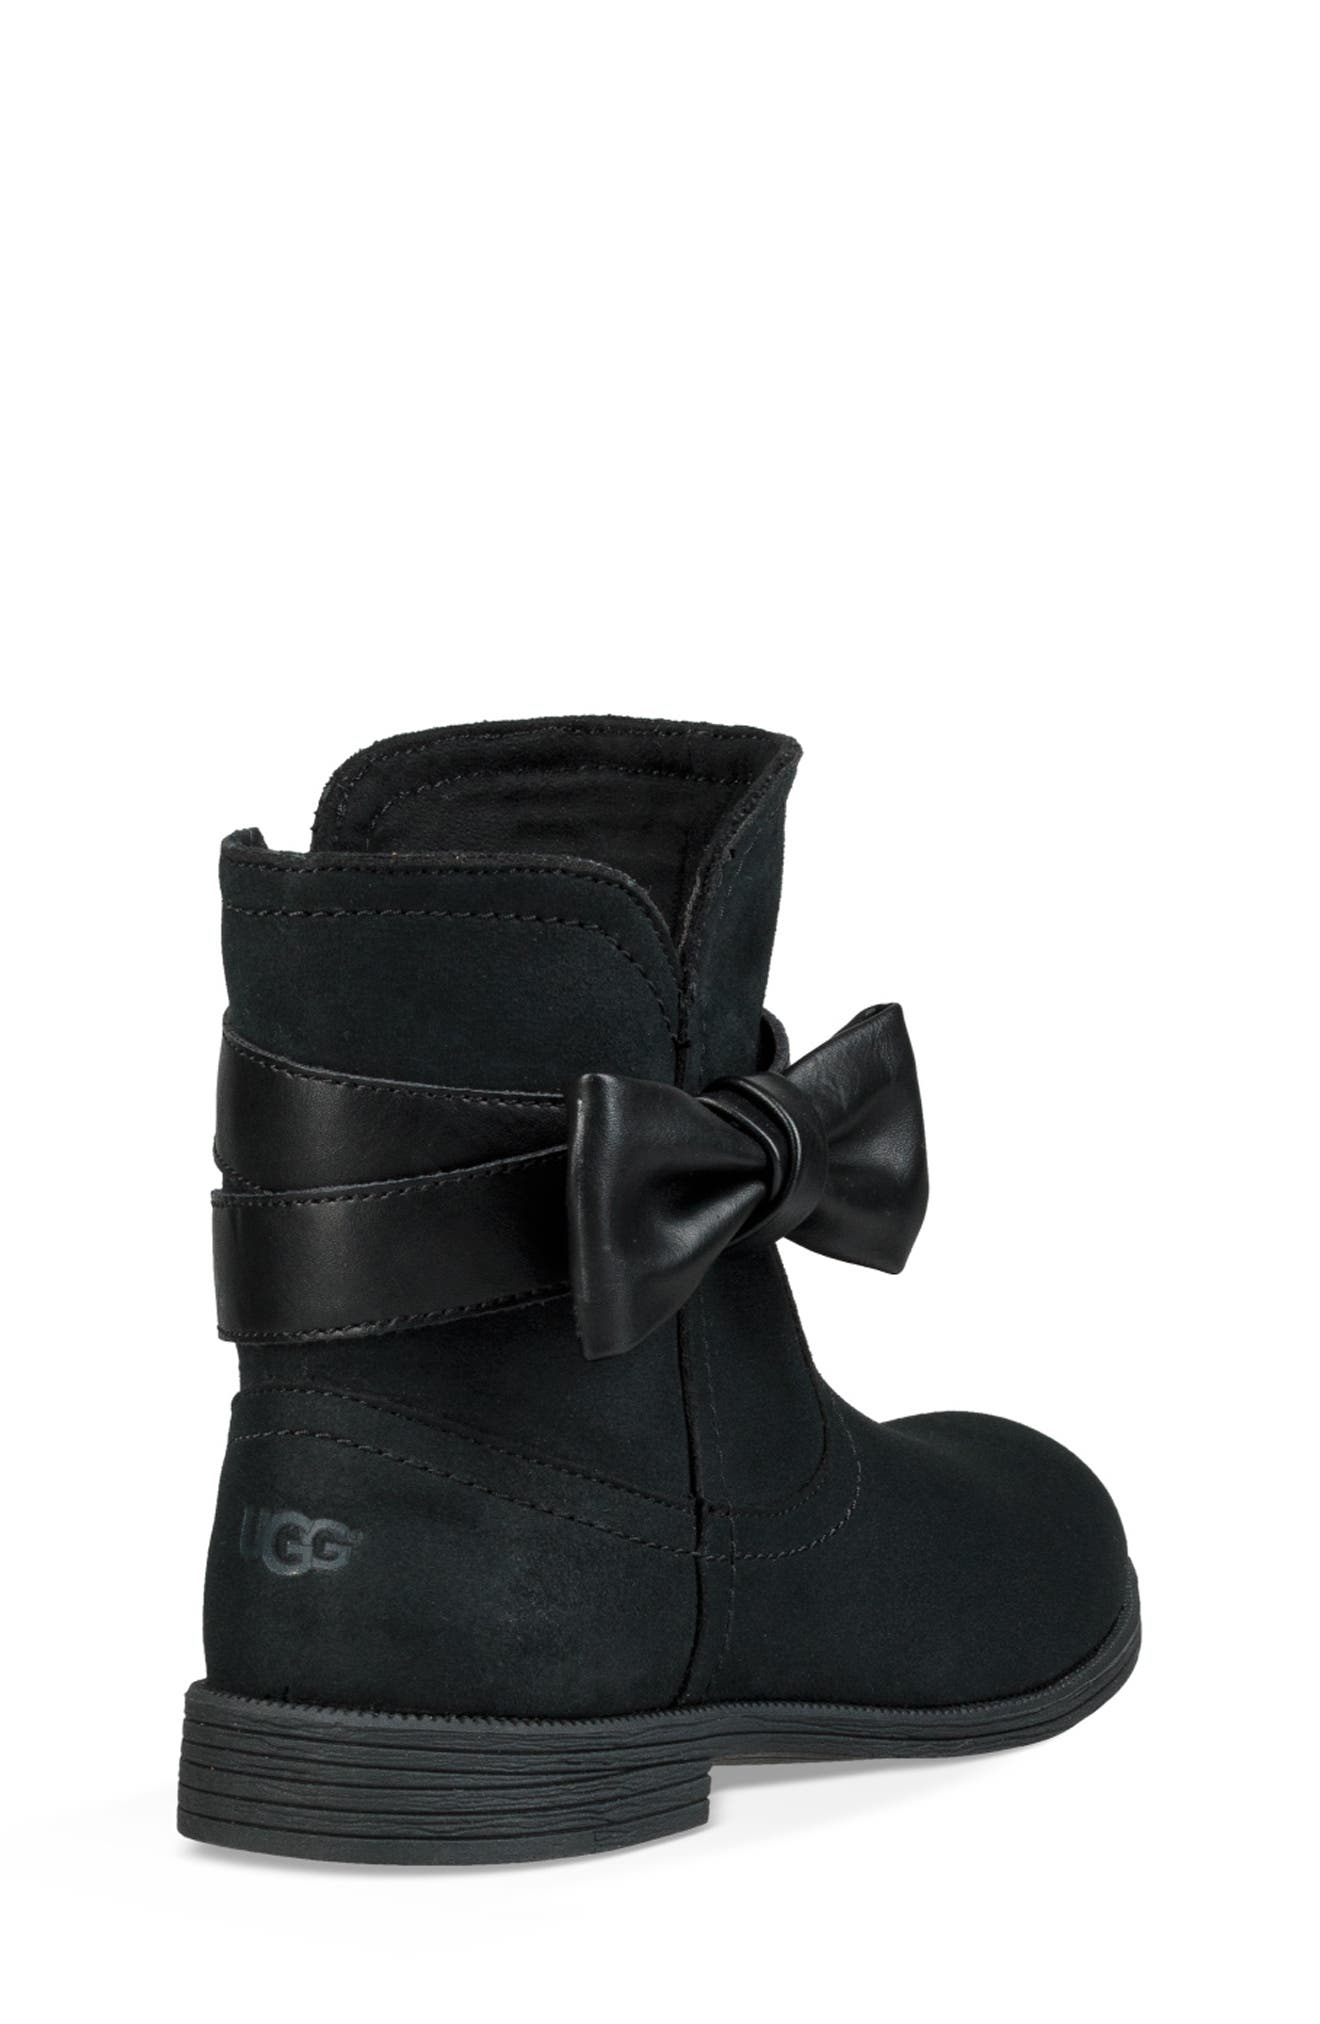 UGG<SUP>®</SUP>, UGG Joanie Bow Boot, Alternate thumbnail 2, color, BLACK